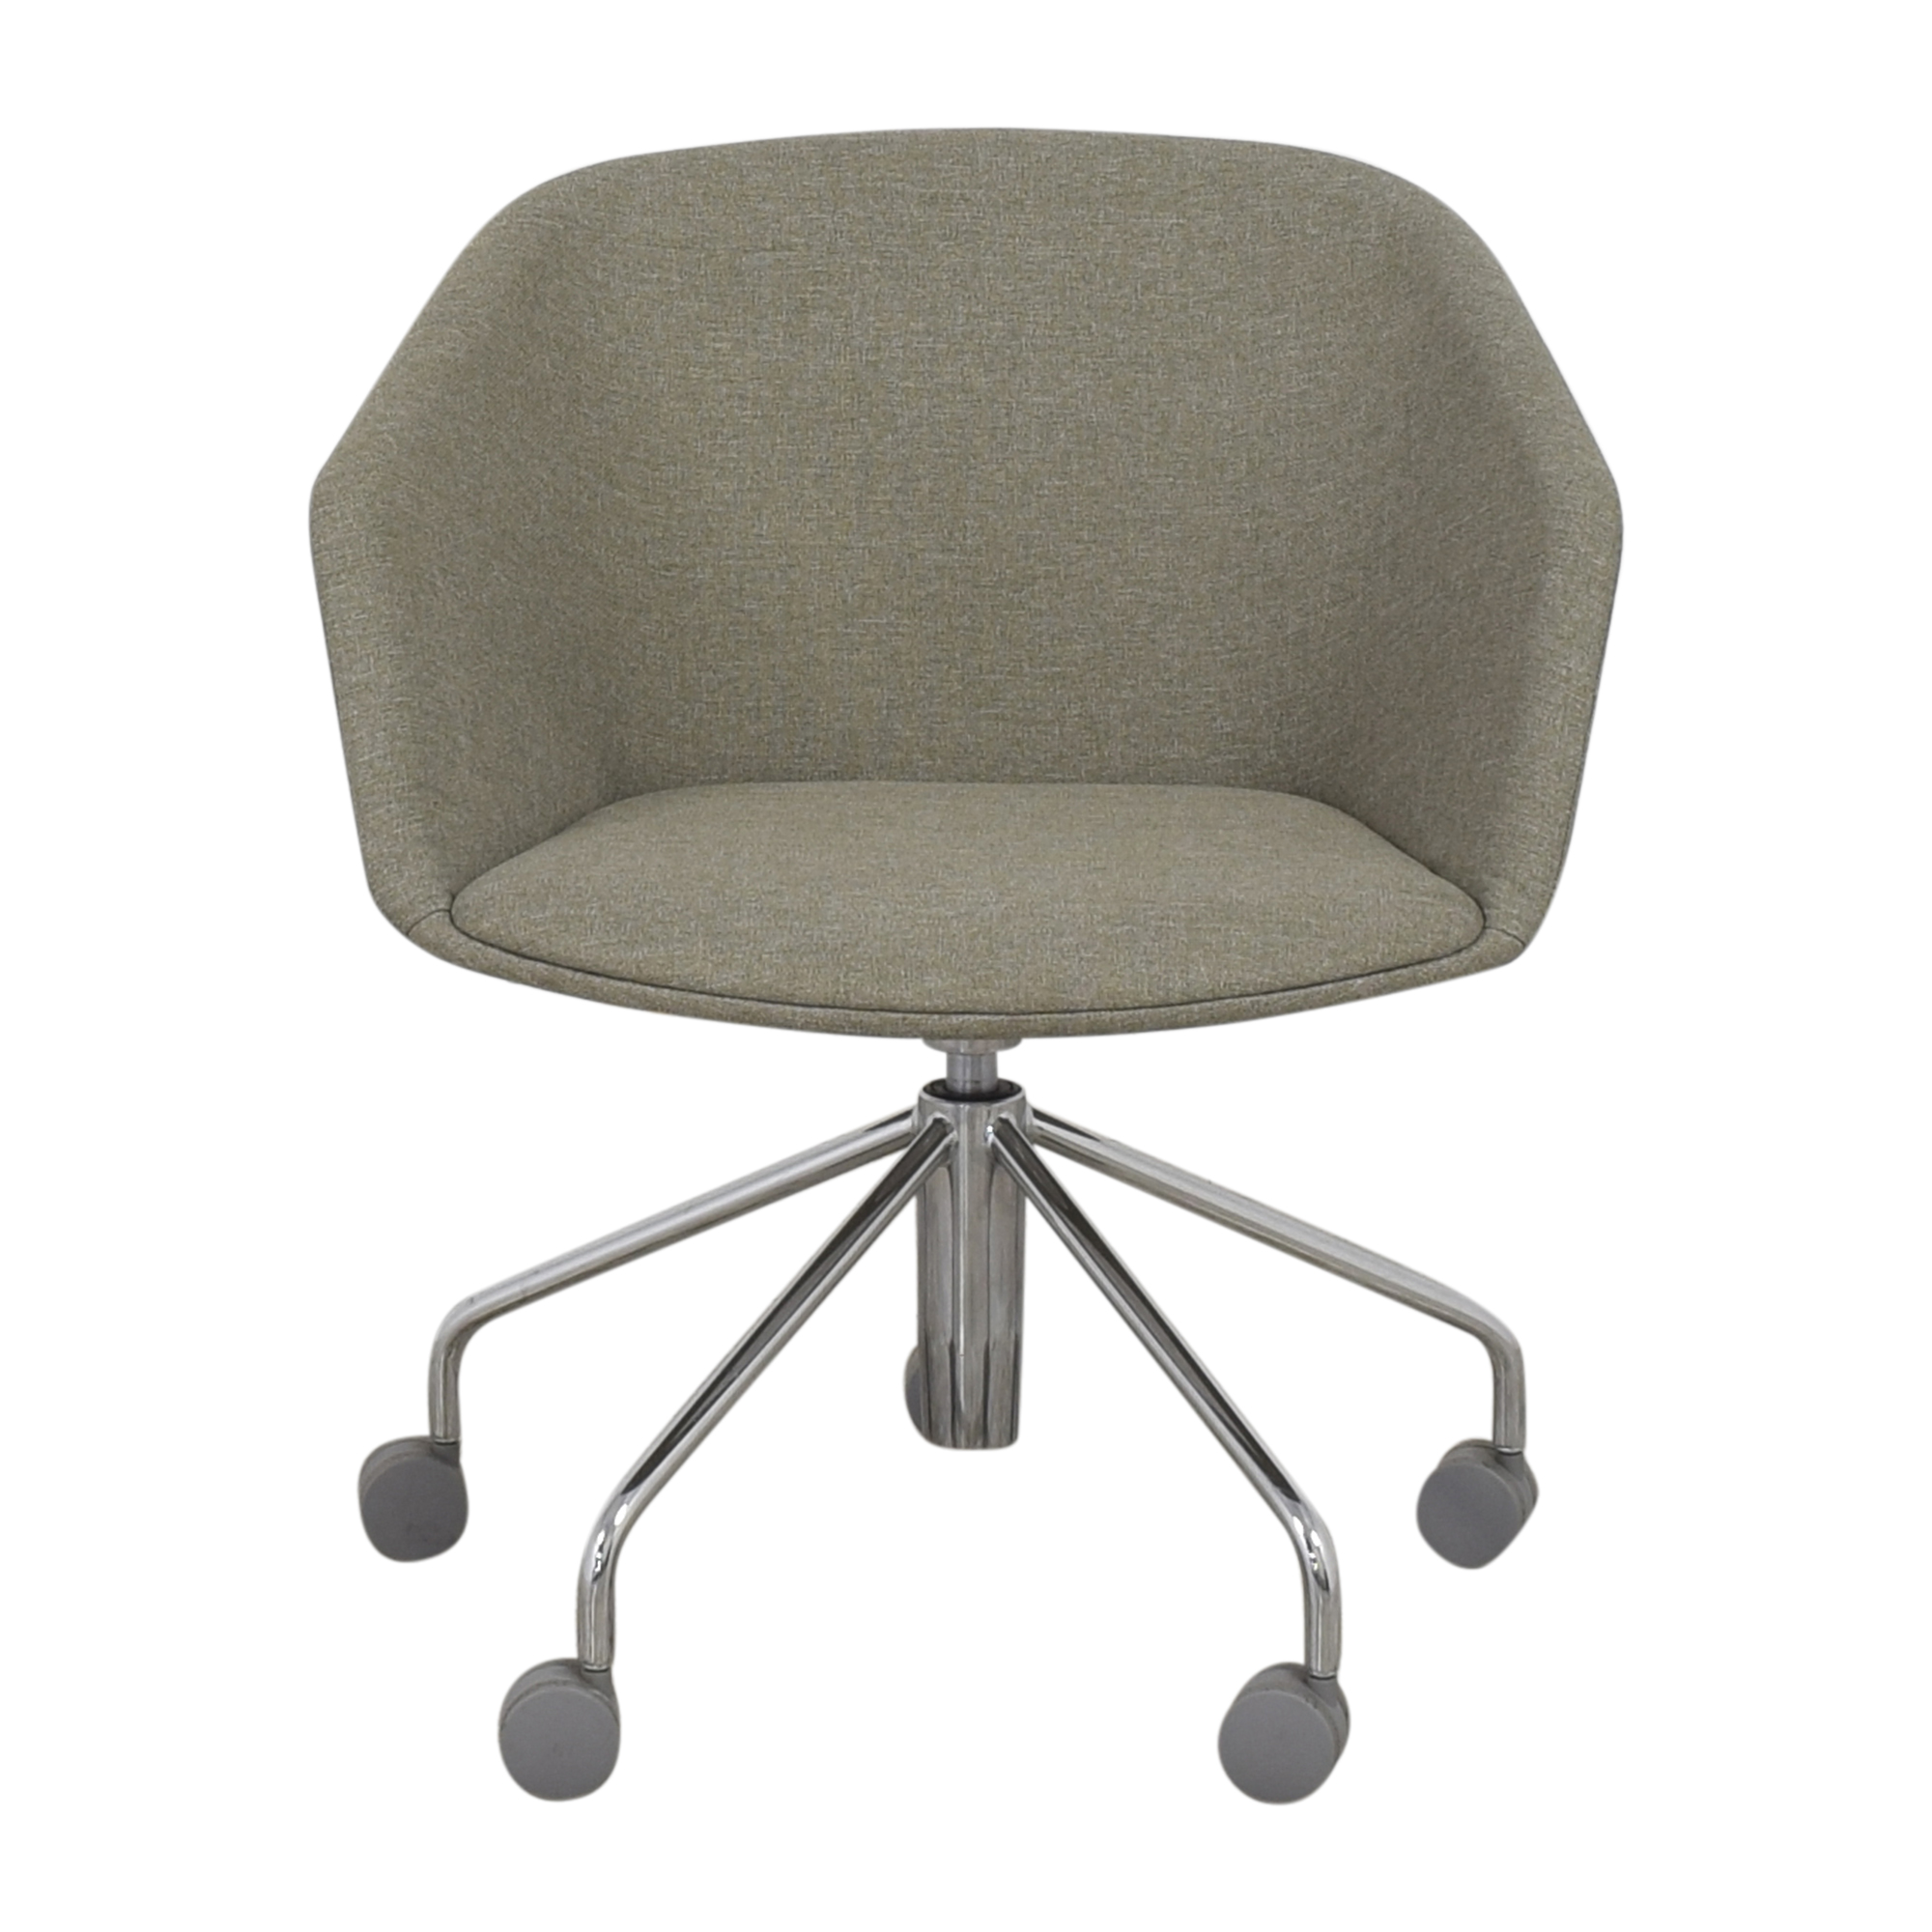 Poppin Poppin Pitch Meeting Chair Chairs